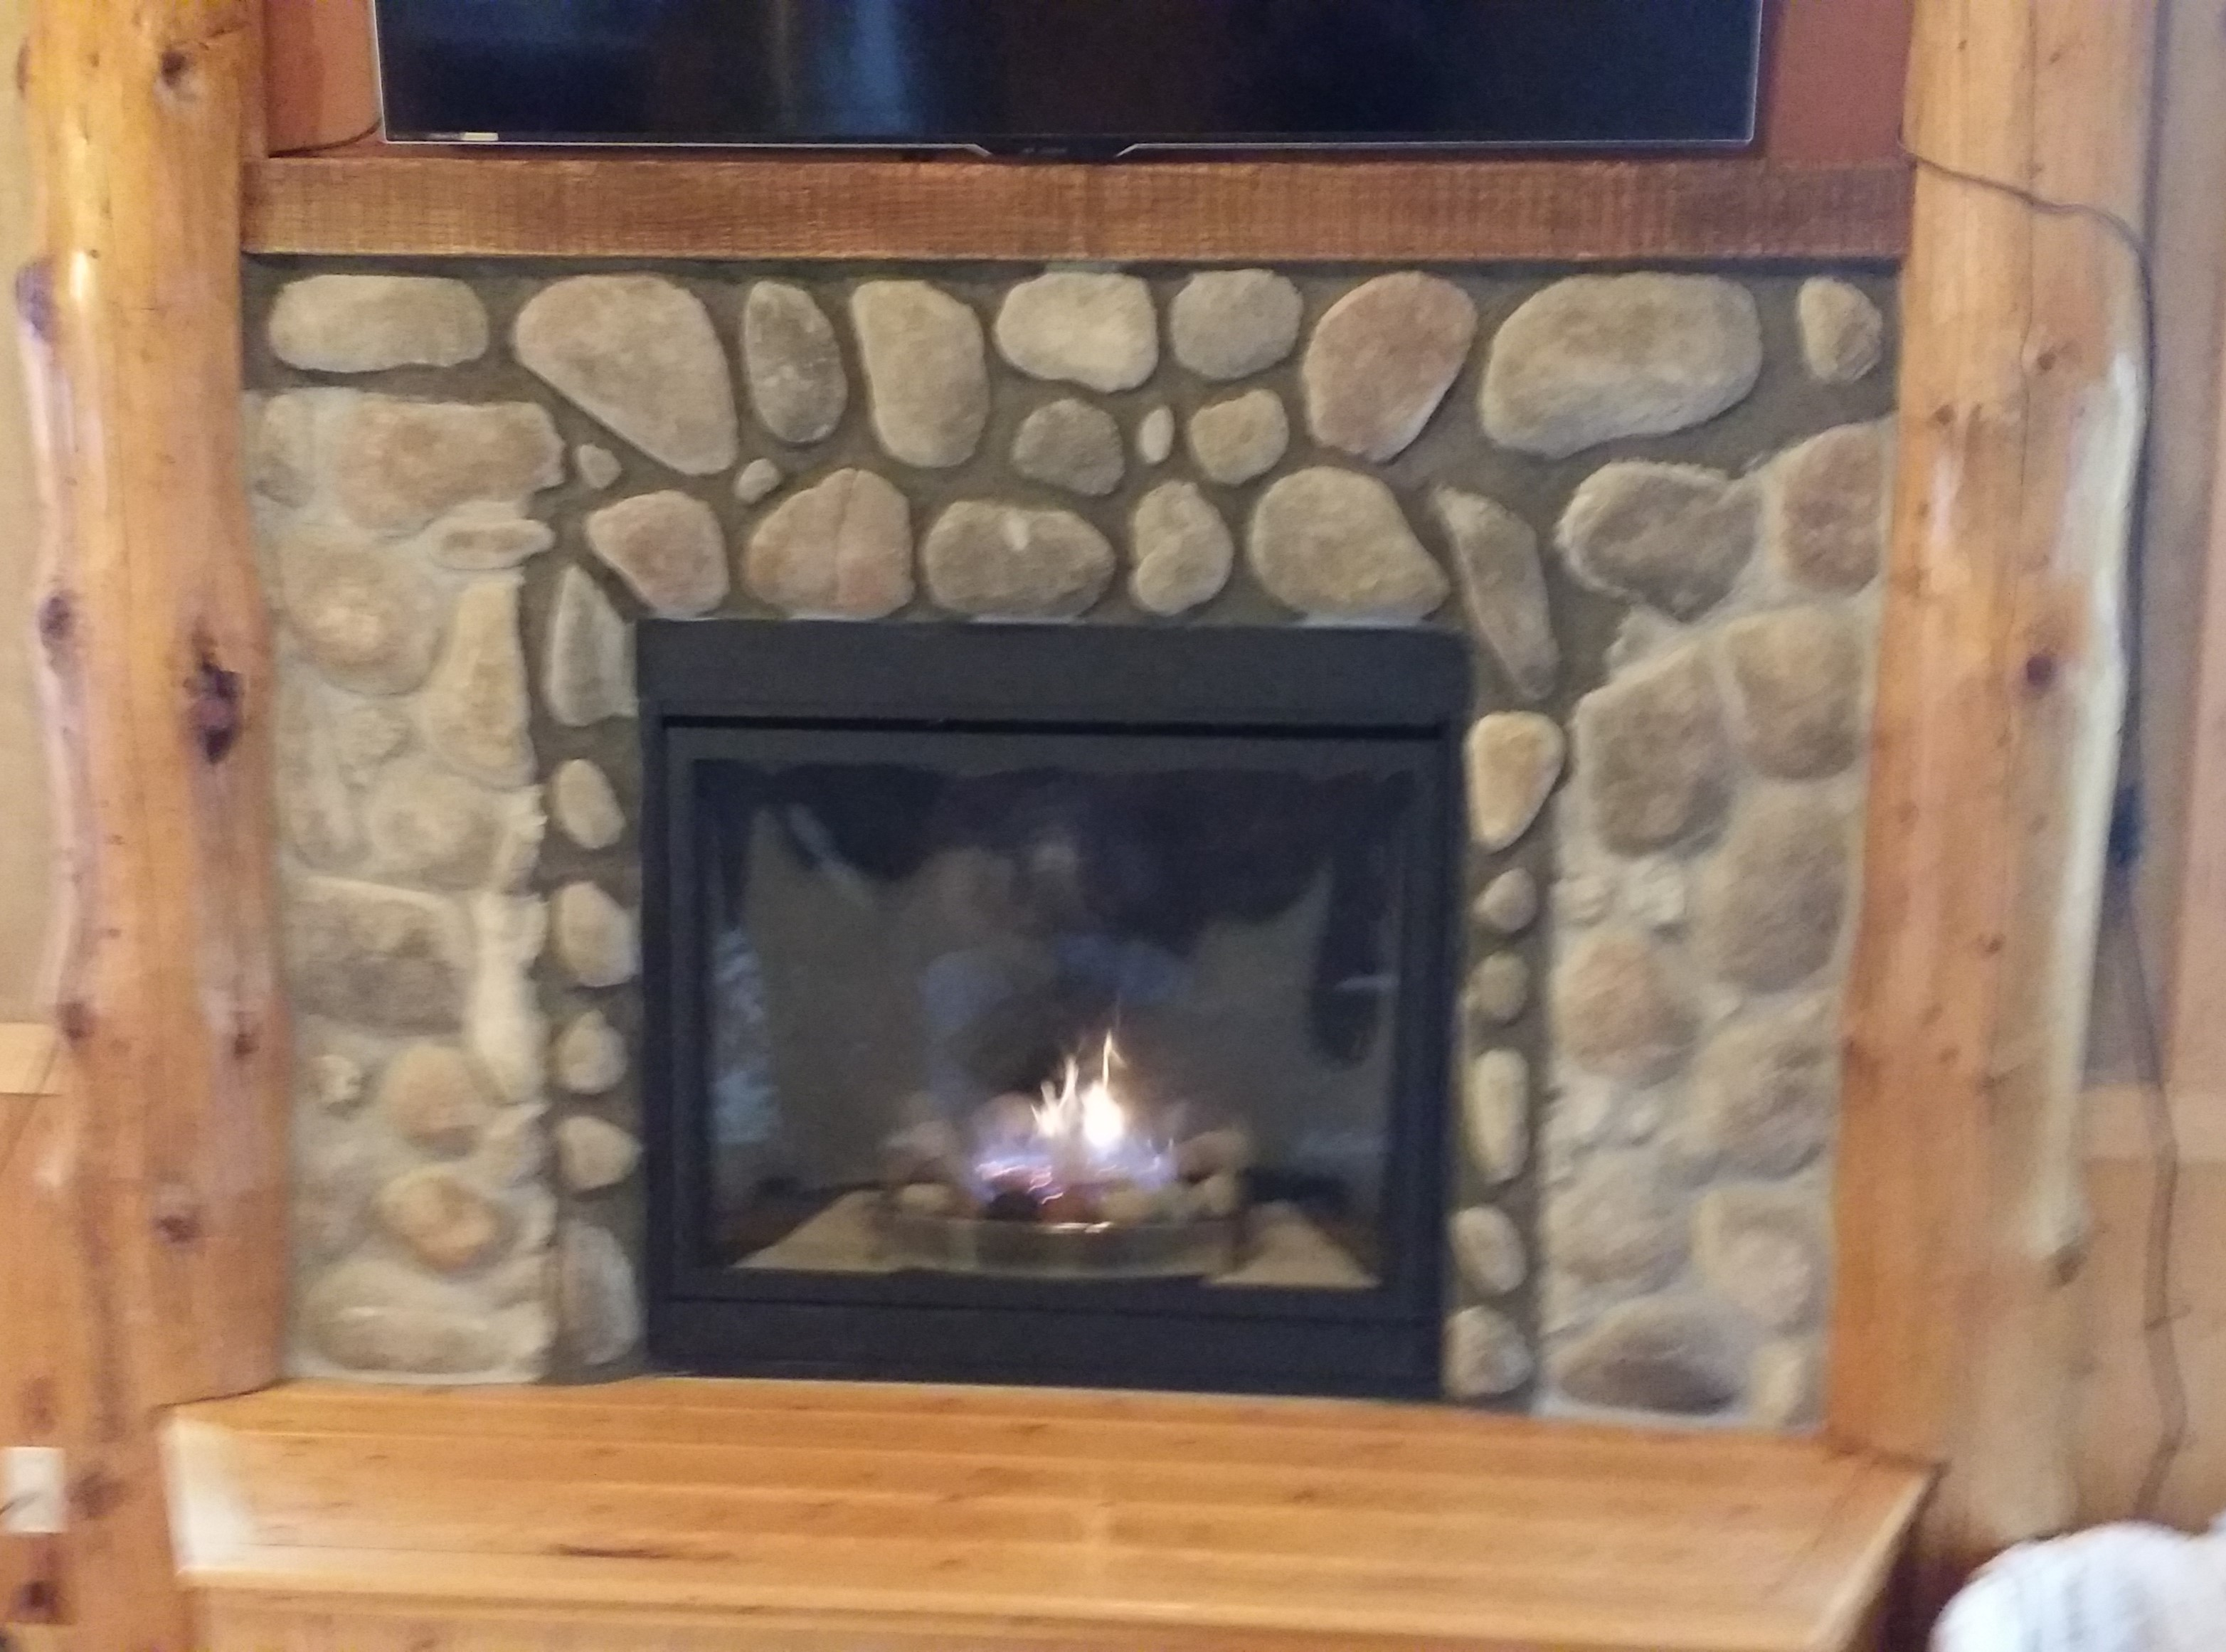 Hearthstone Fireplace Insert Lovely Double Sided Fireplace Home Gas Fireplace Scents